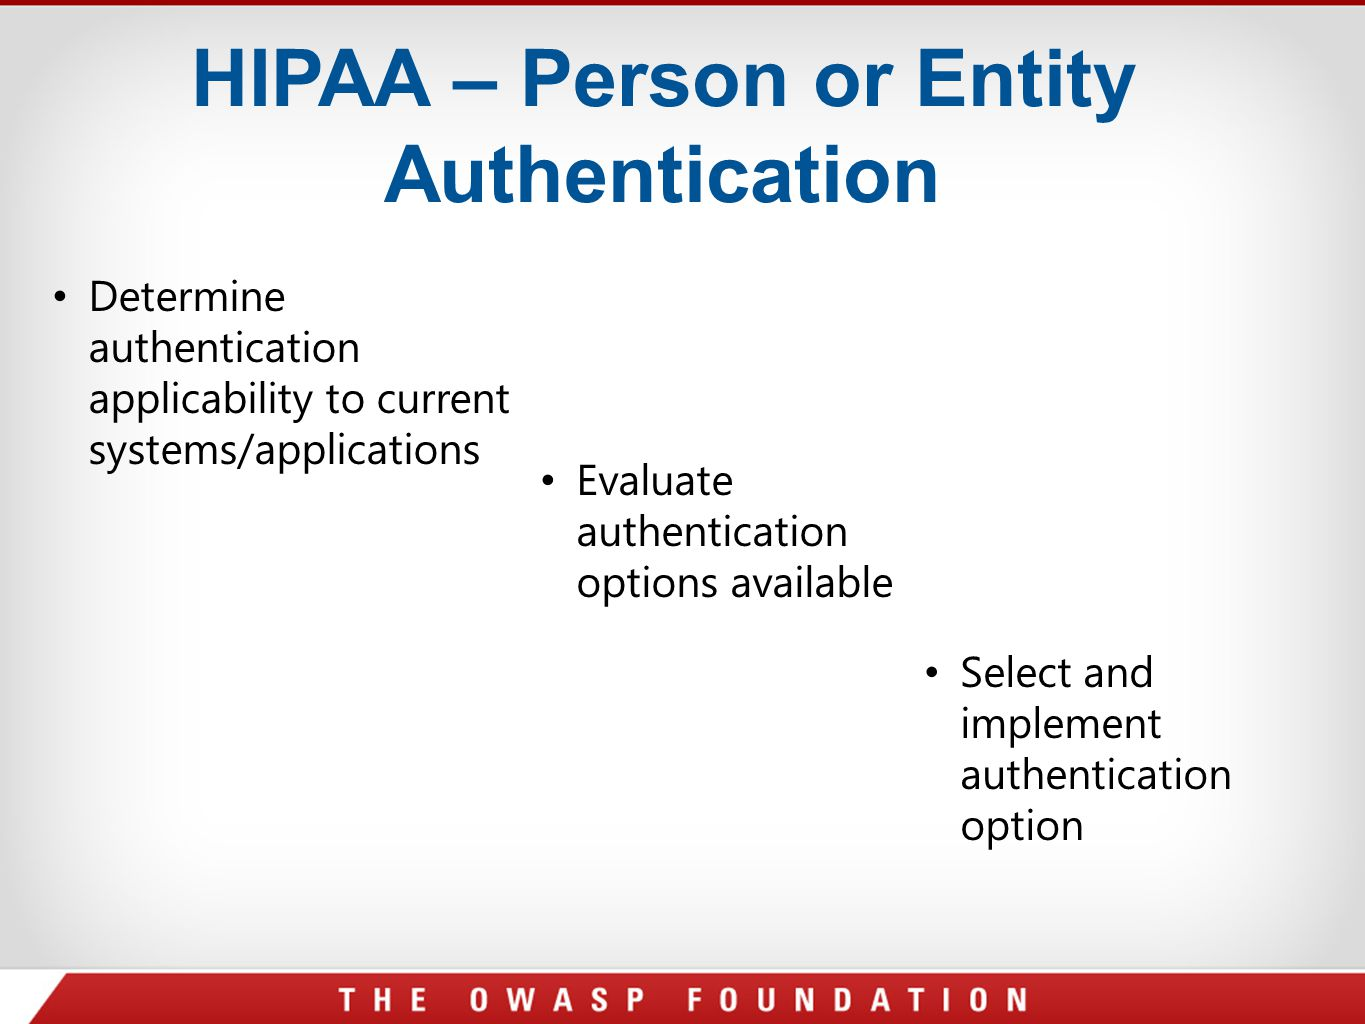 HIPAA – Person or Entity Authentication